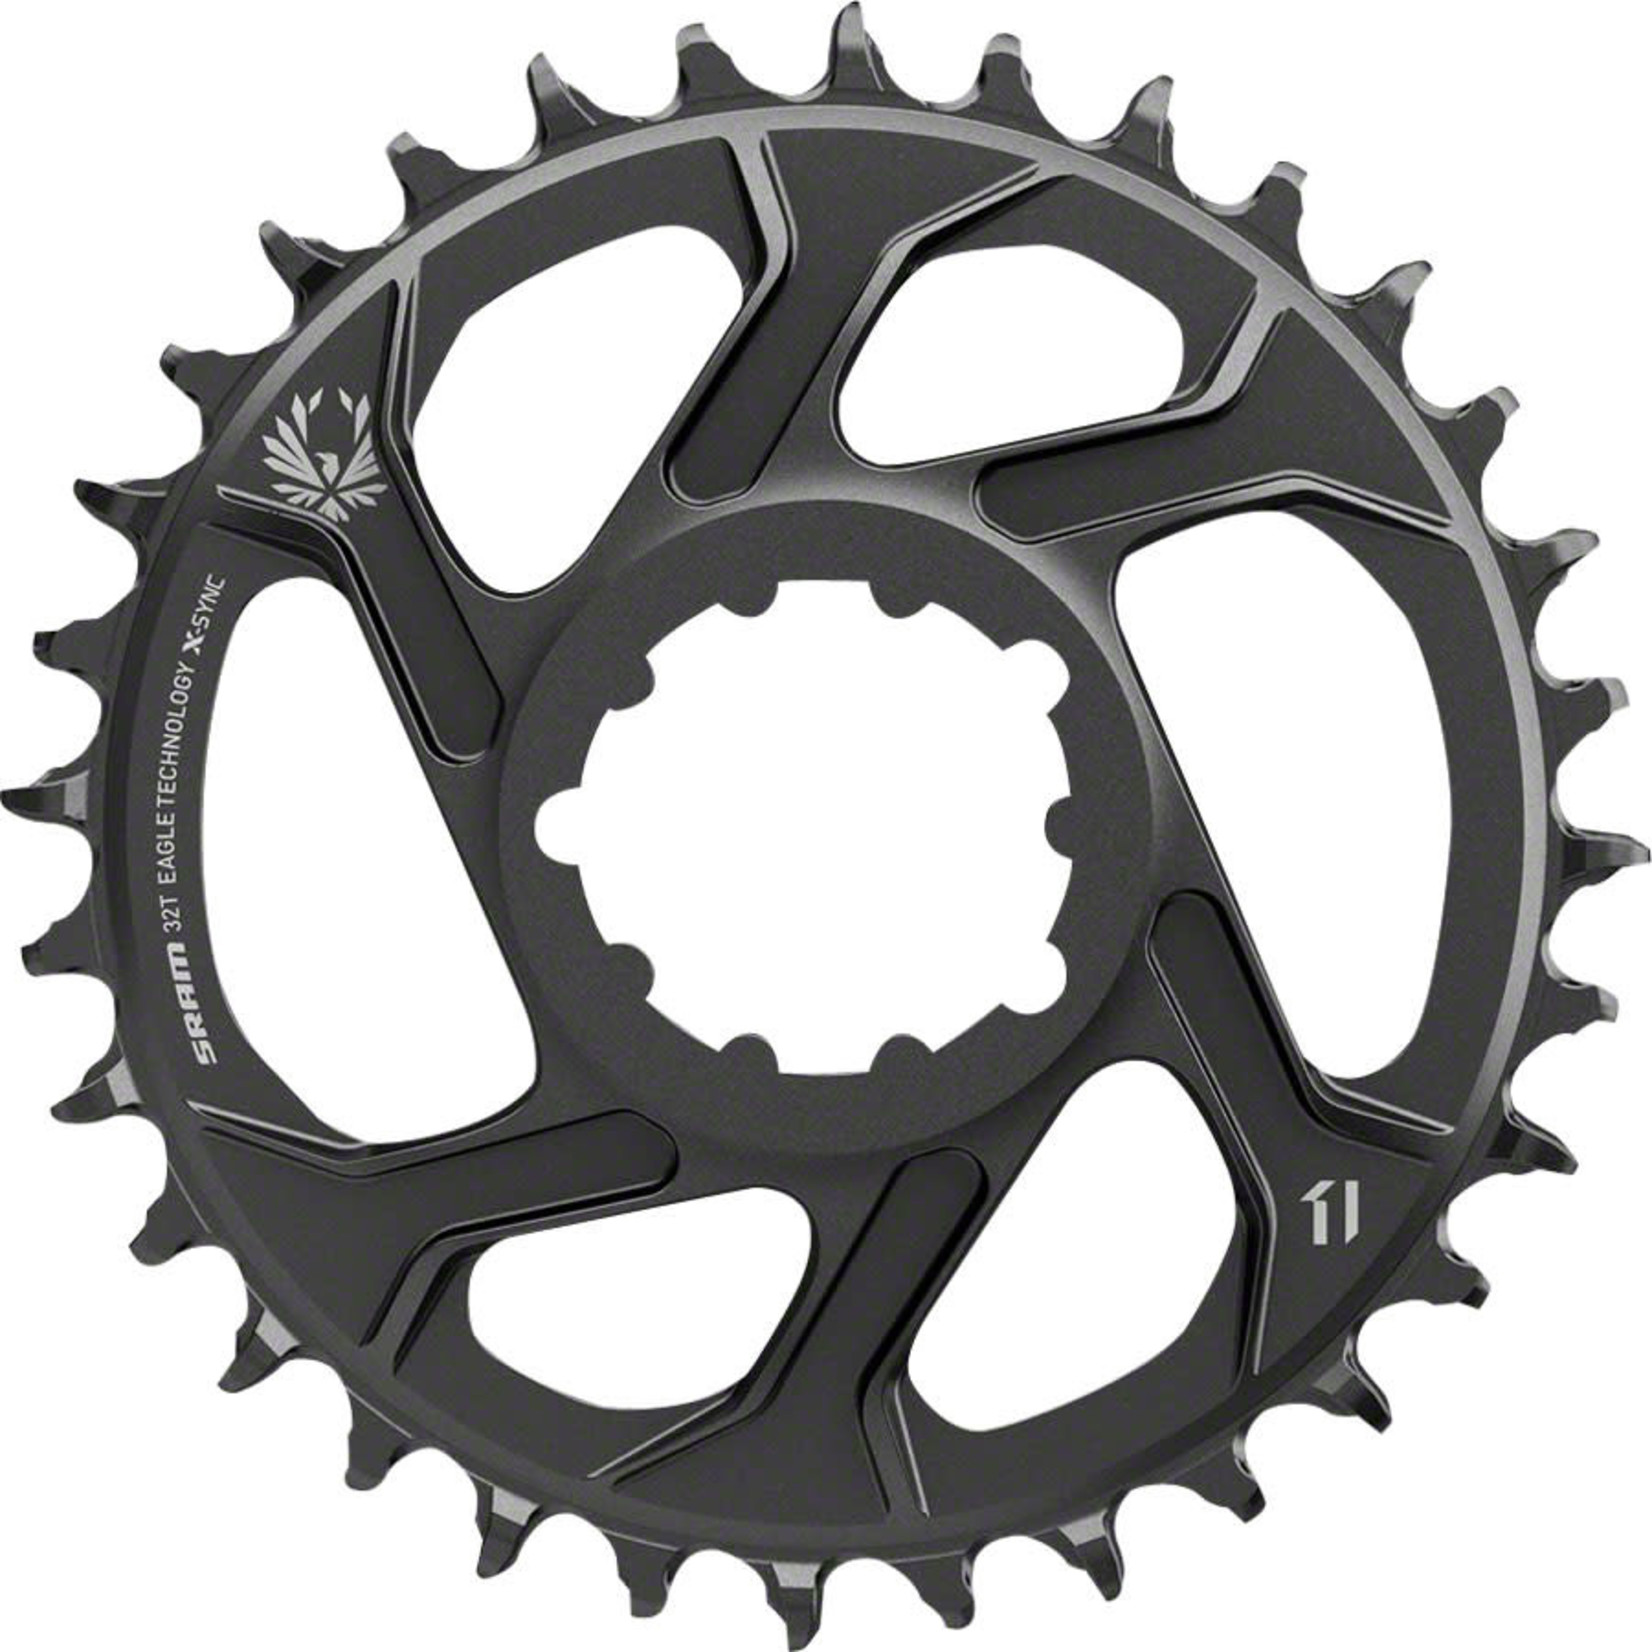 SRAM SRAM X-Sync 2 Eagle Direct Mount Chainring 32T 6mm Offset